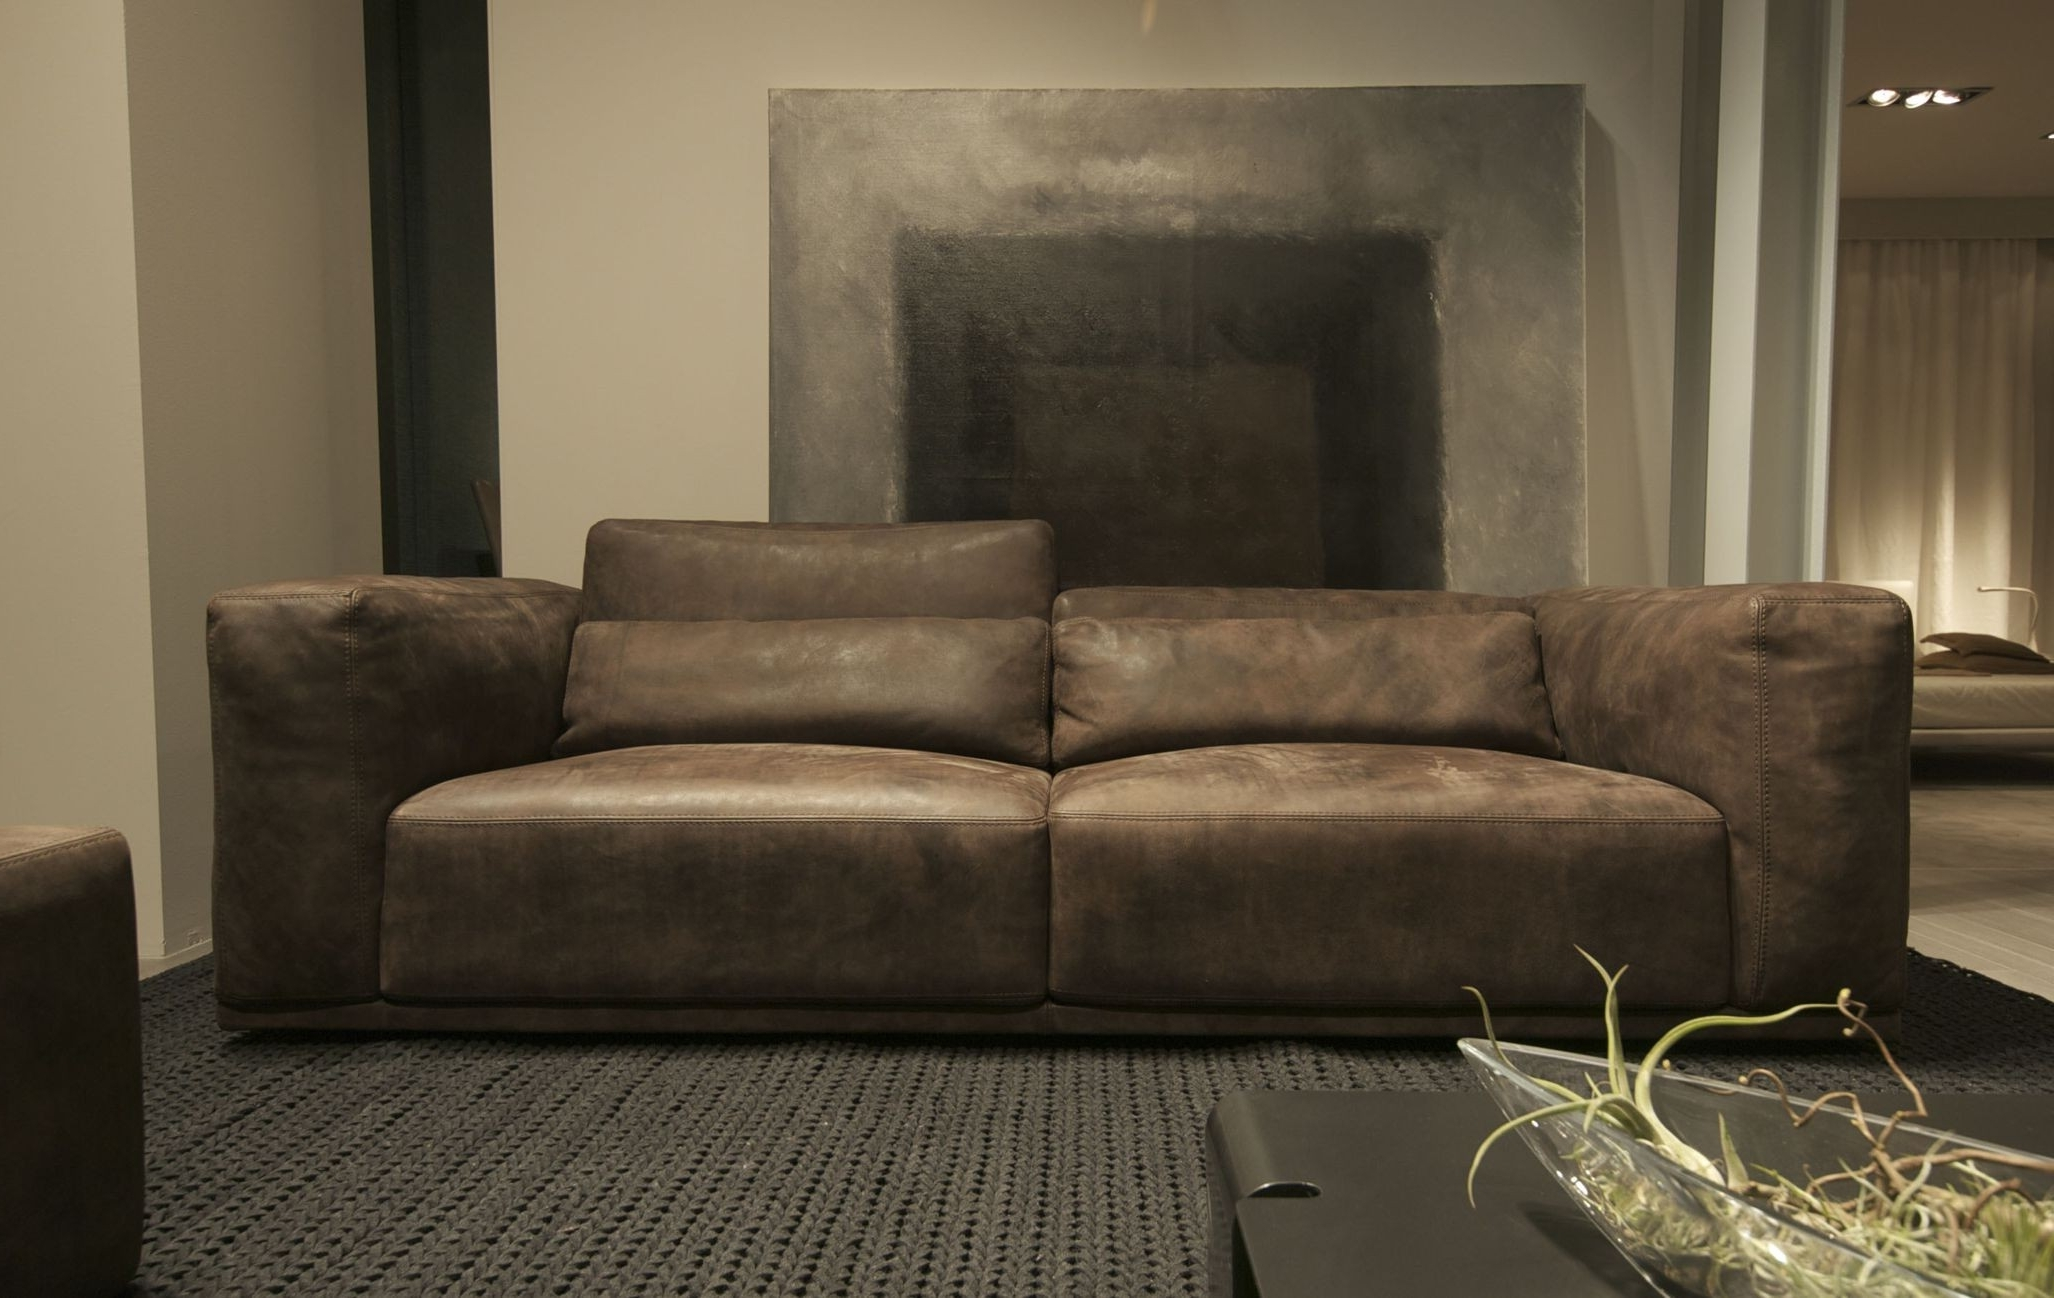 2019 Luxury Sofas Within Nabucco Modern Luxury Sofa (View 1 of 20)